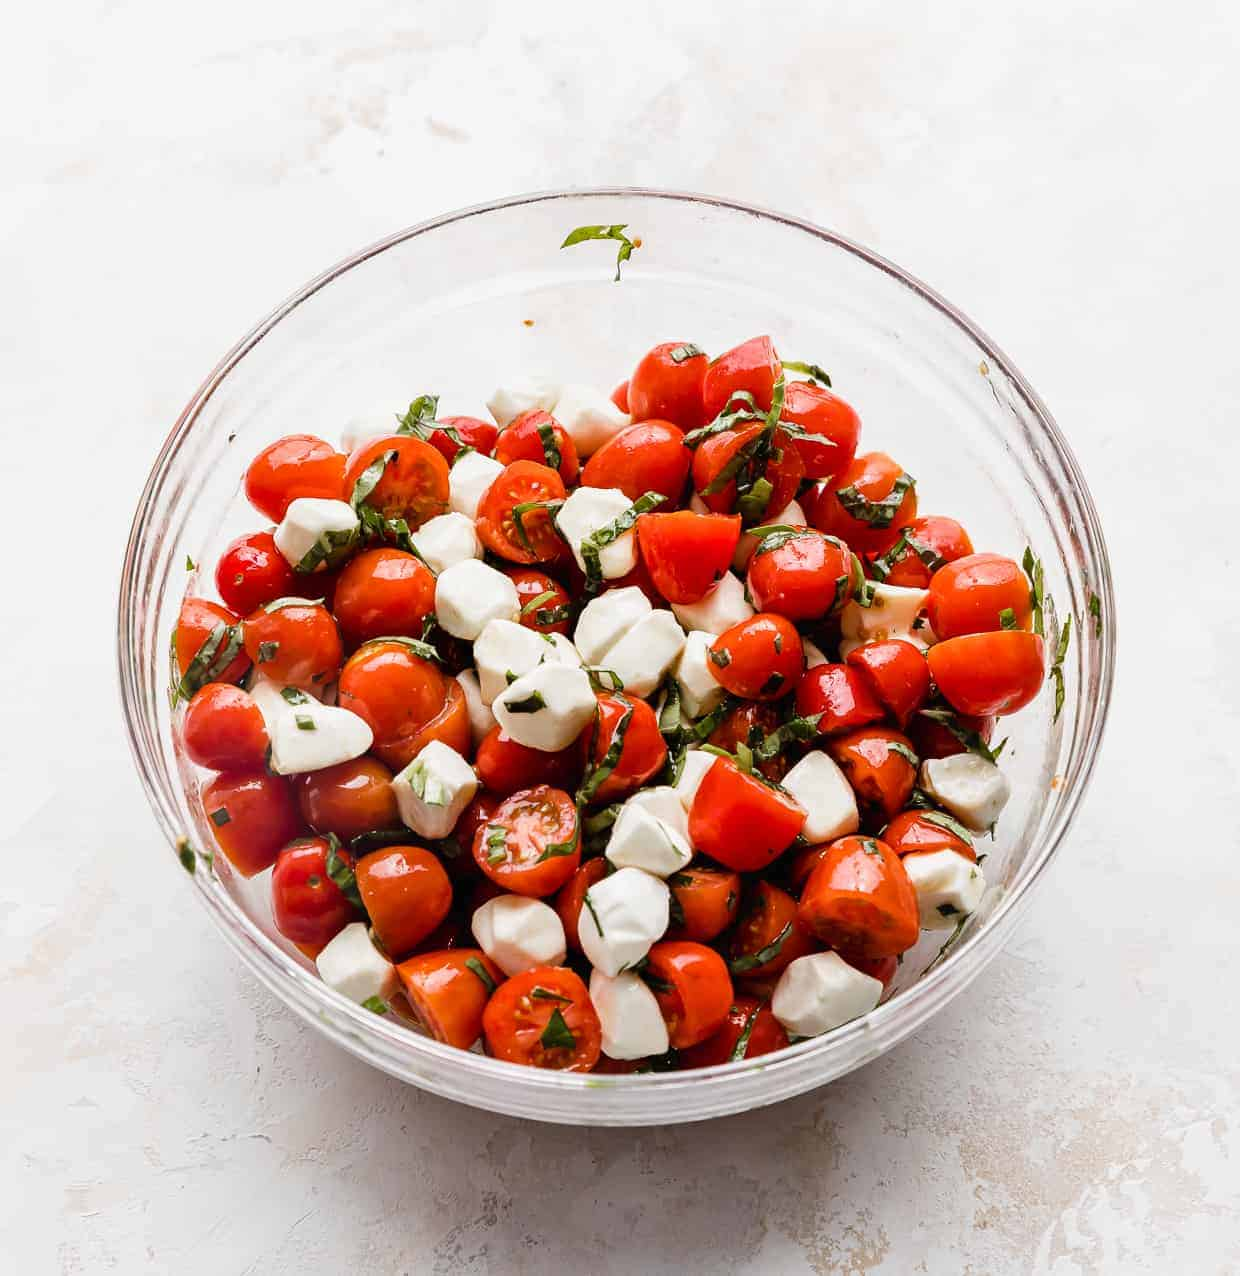 A glass bowl full of red grape tomatoes tossed with mozzarella balls and chopped basil.